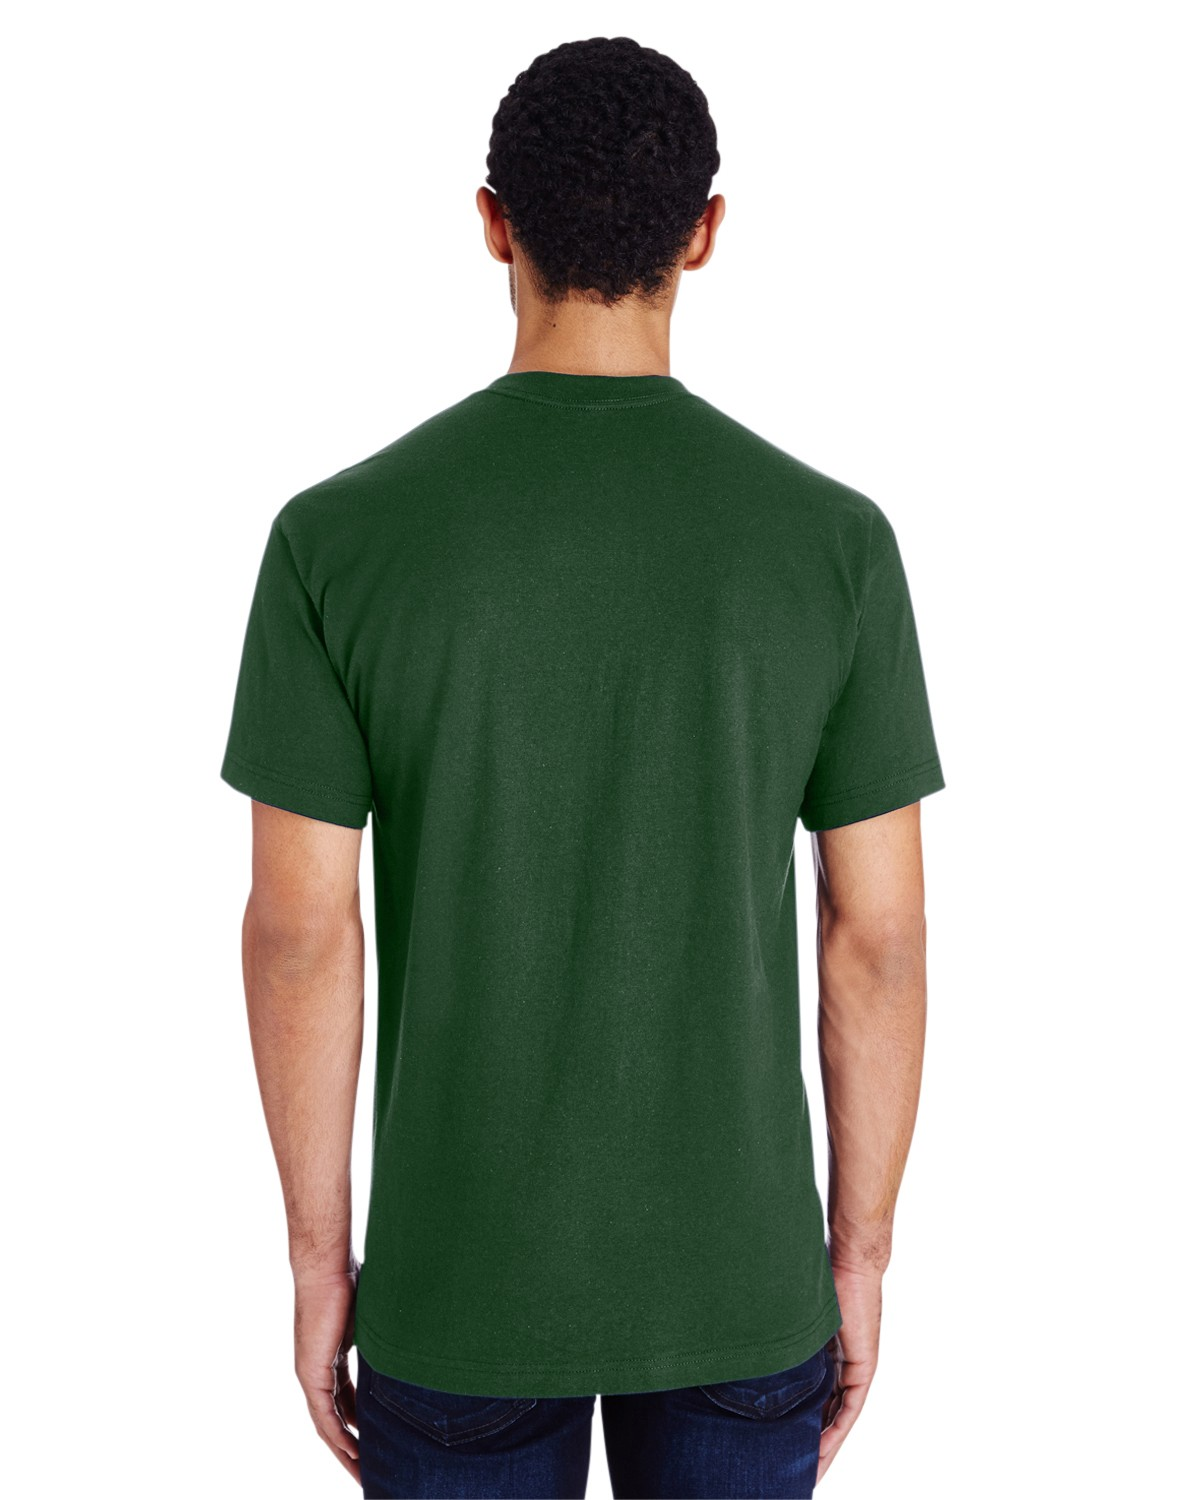 H000 Gildan SPORT DARK GREEN